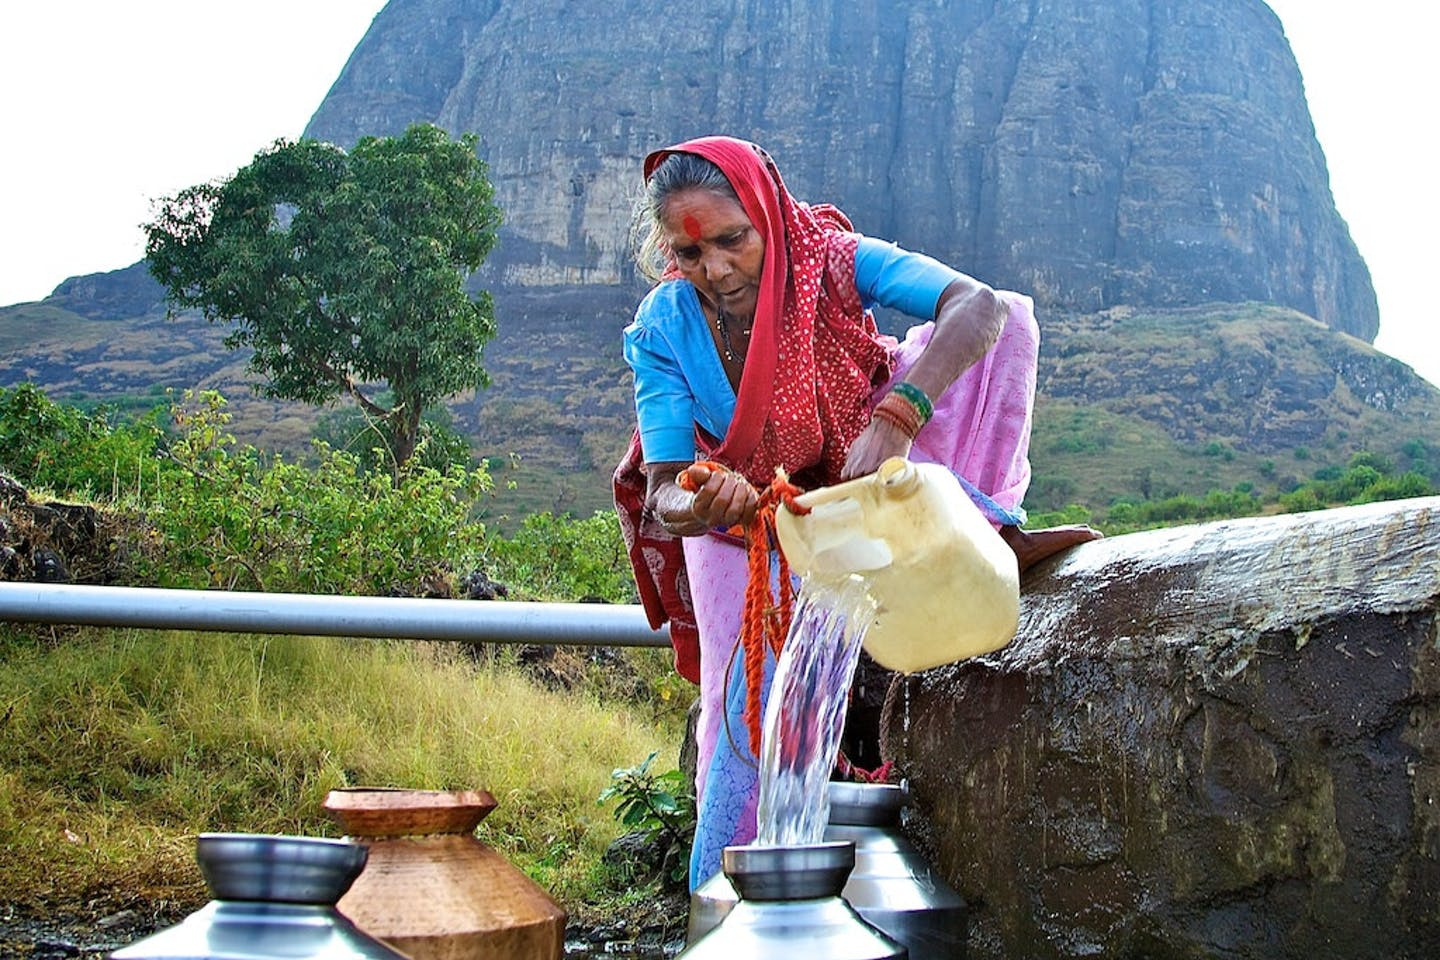 lady at the well in Maharashtra